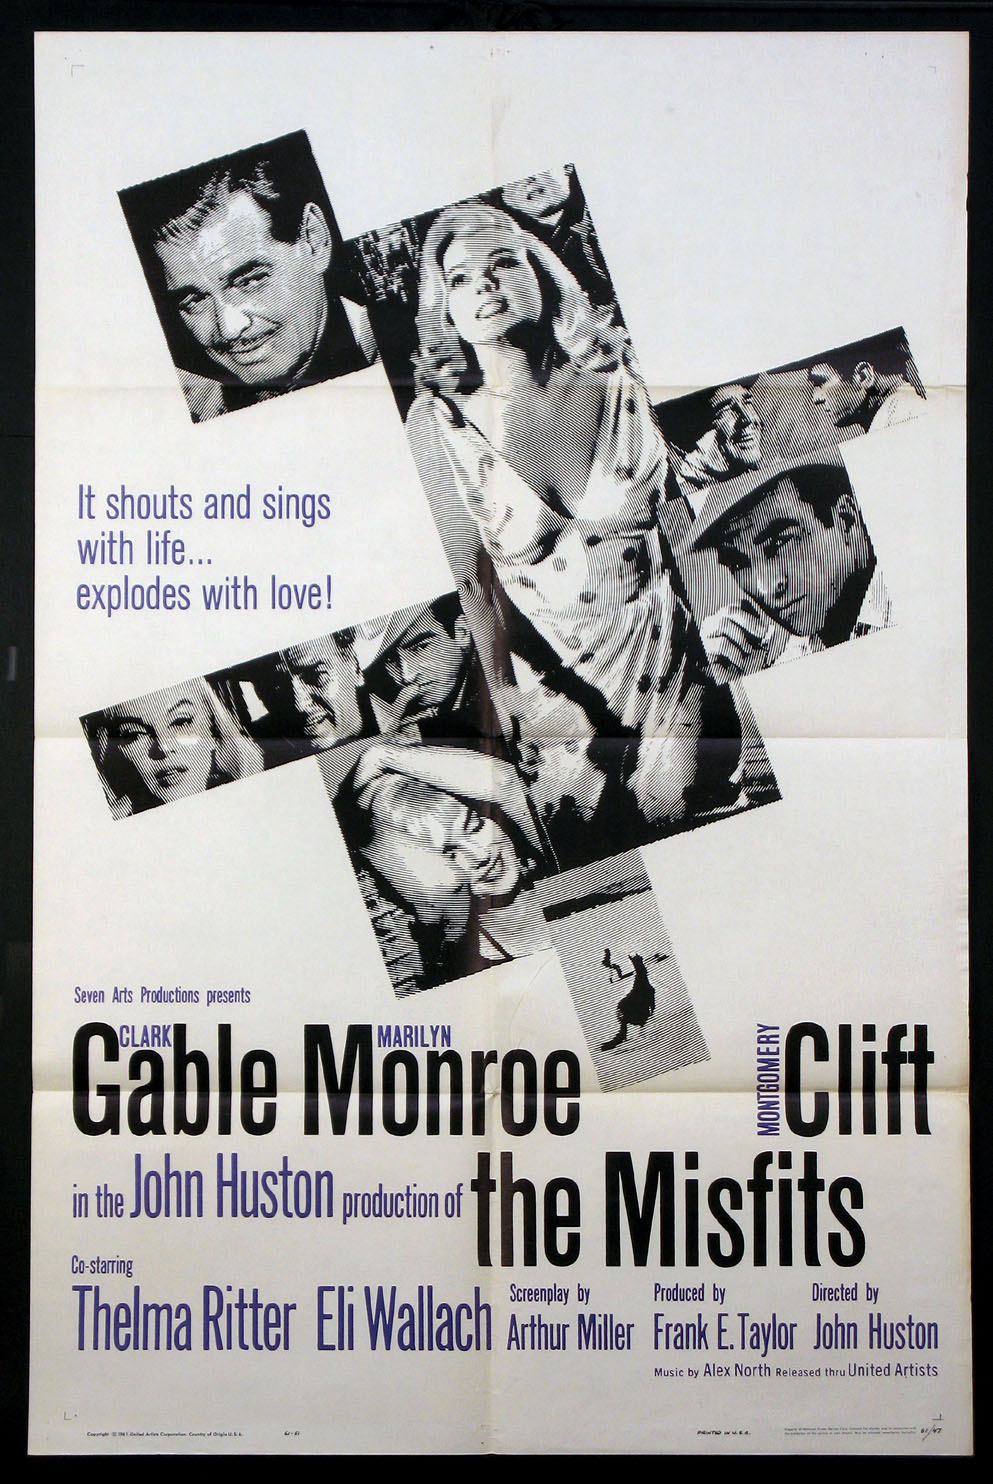 MISFITS, THE (The Misfits) @ FilmPosters.com